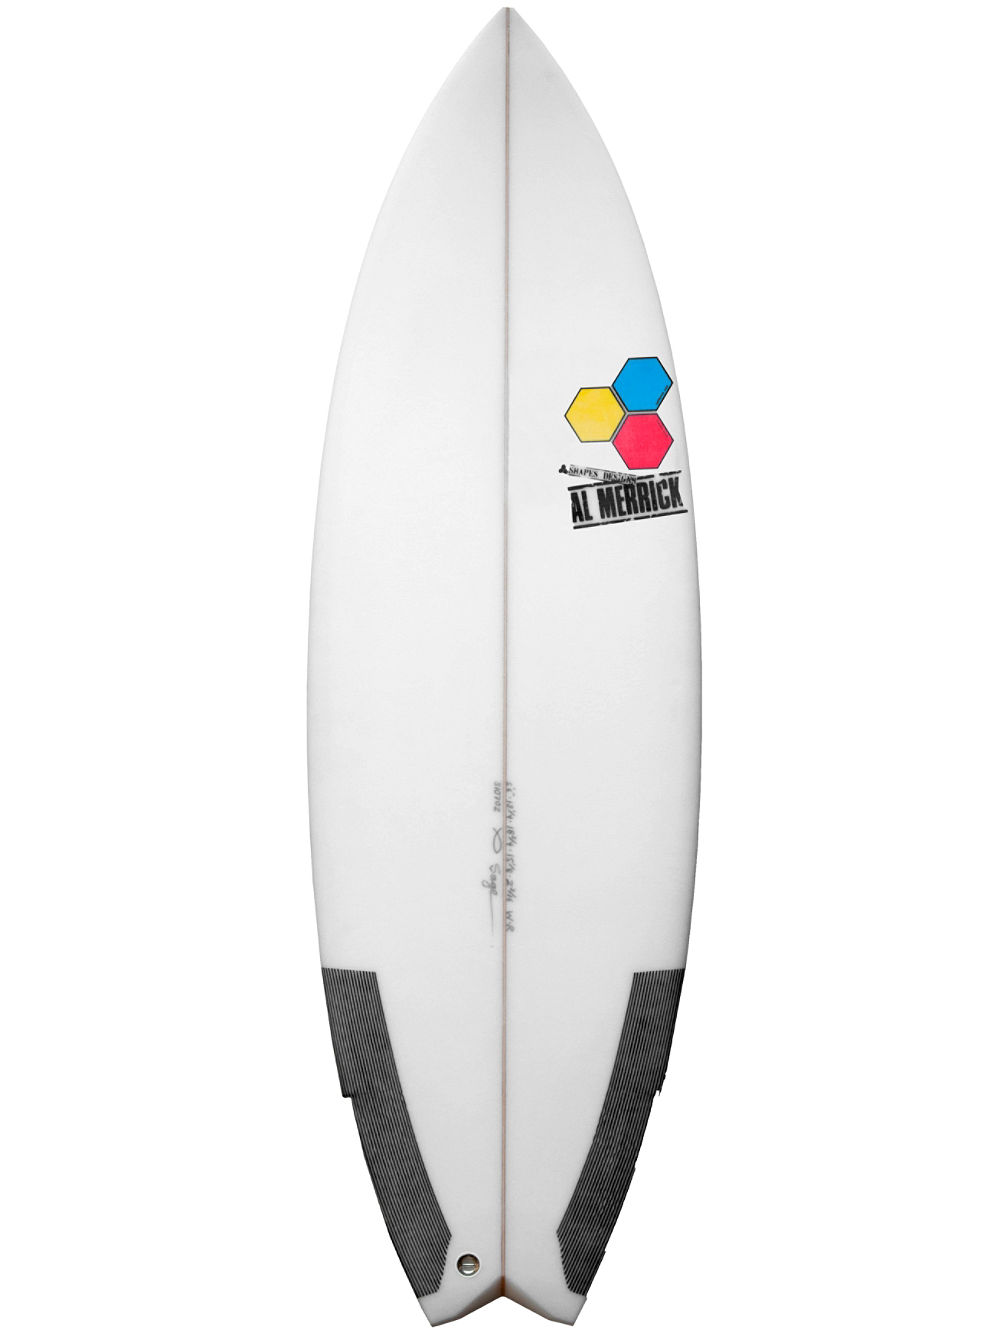 WeirdoRipper 5'9 Surfboard